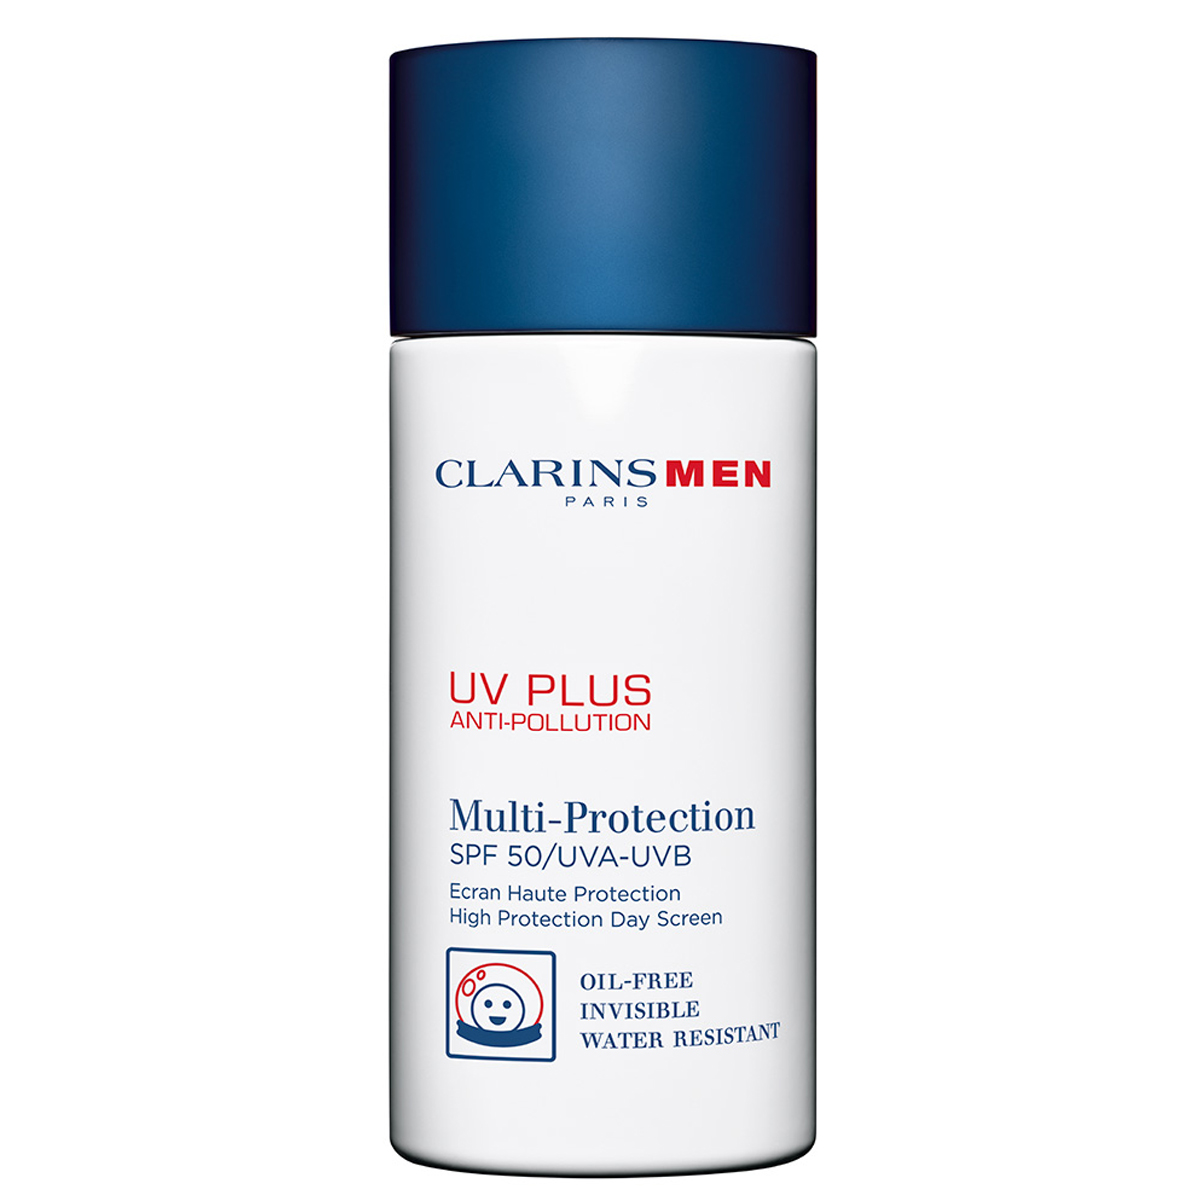 Clarins Men UV Plus SPF 50 UVA/UVB 50 ml